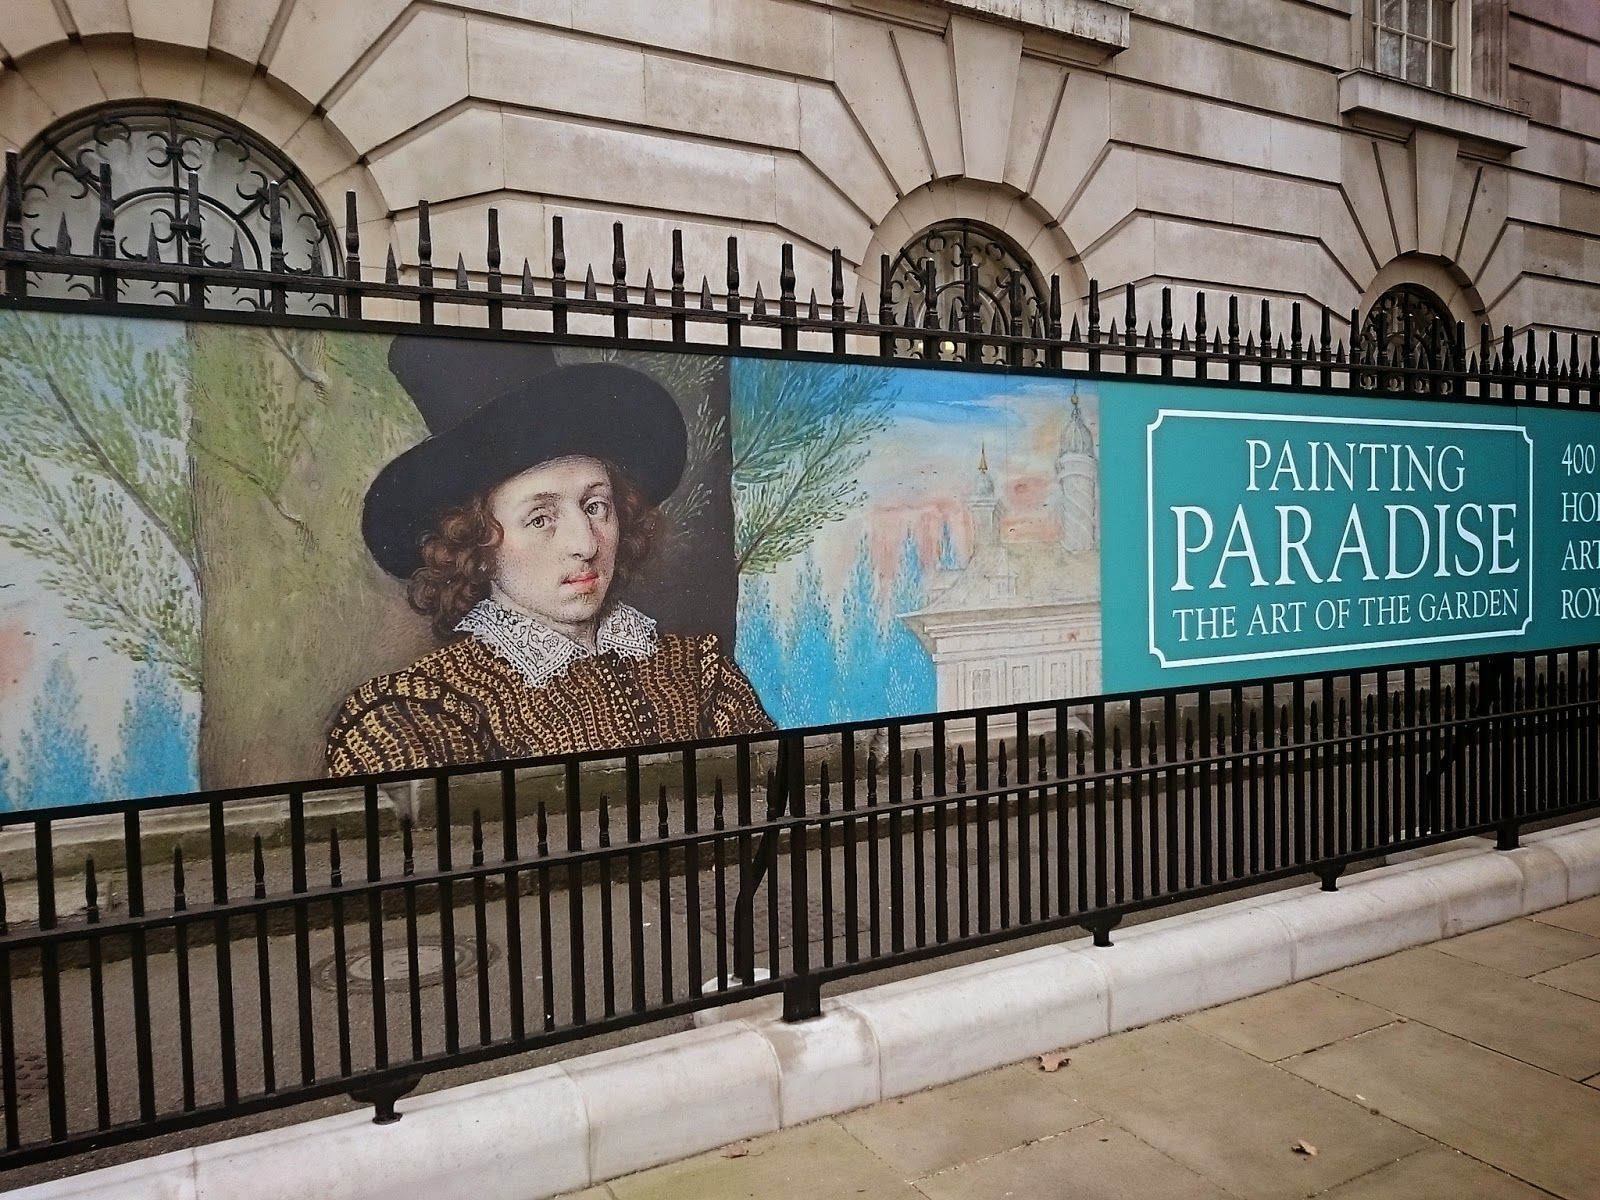 Exhibition poster outside the Queen's Gallery